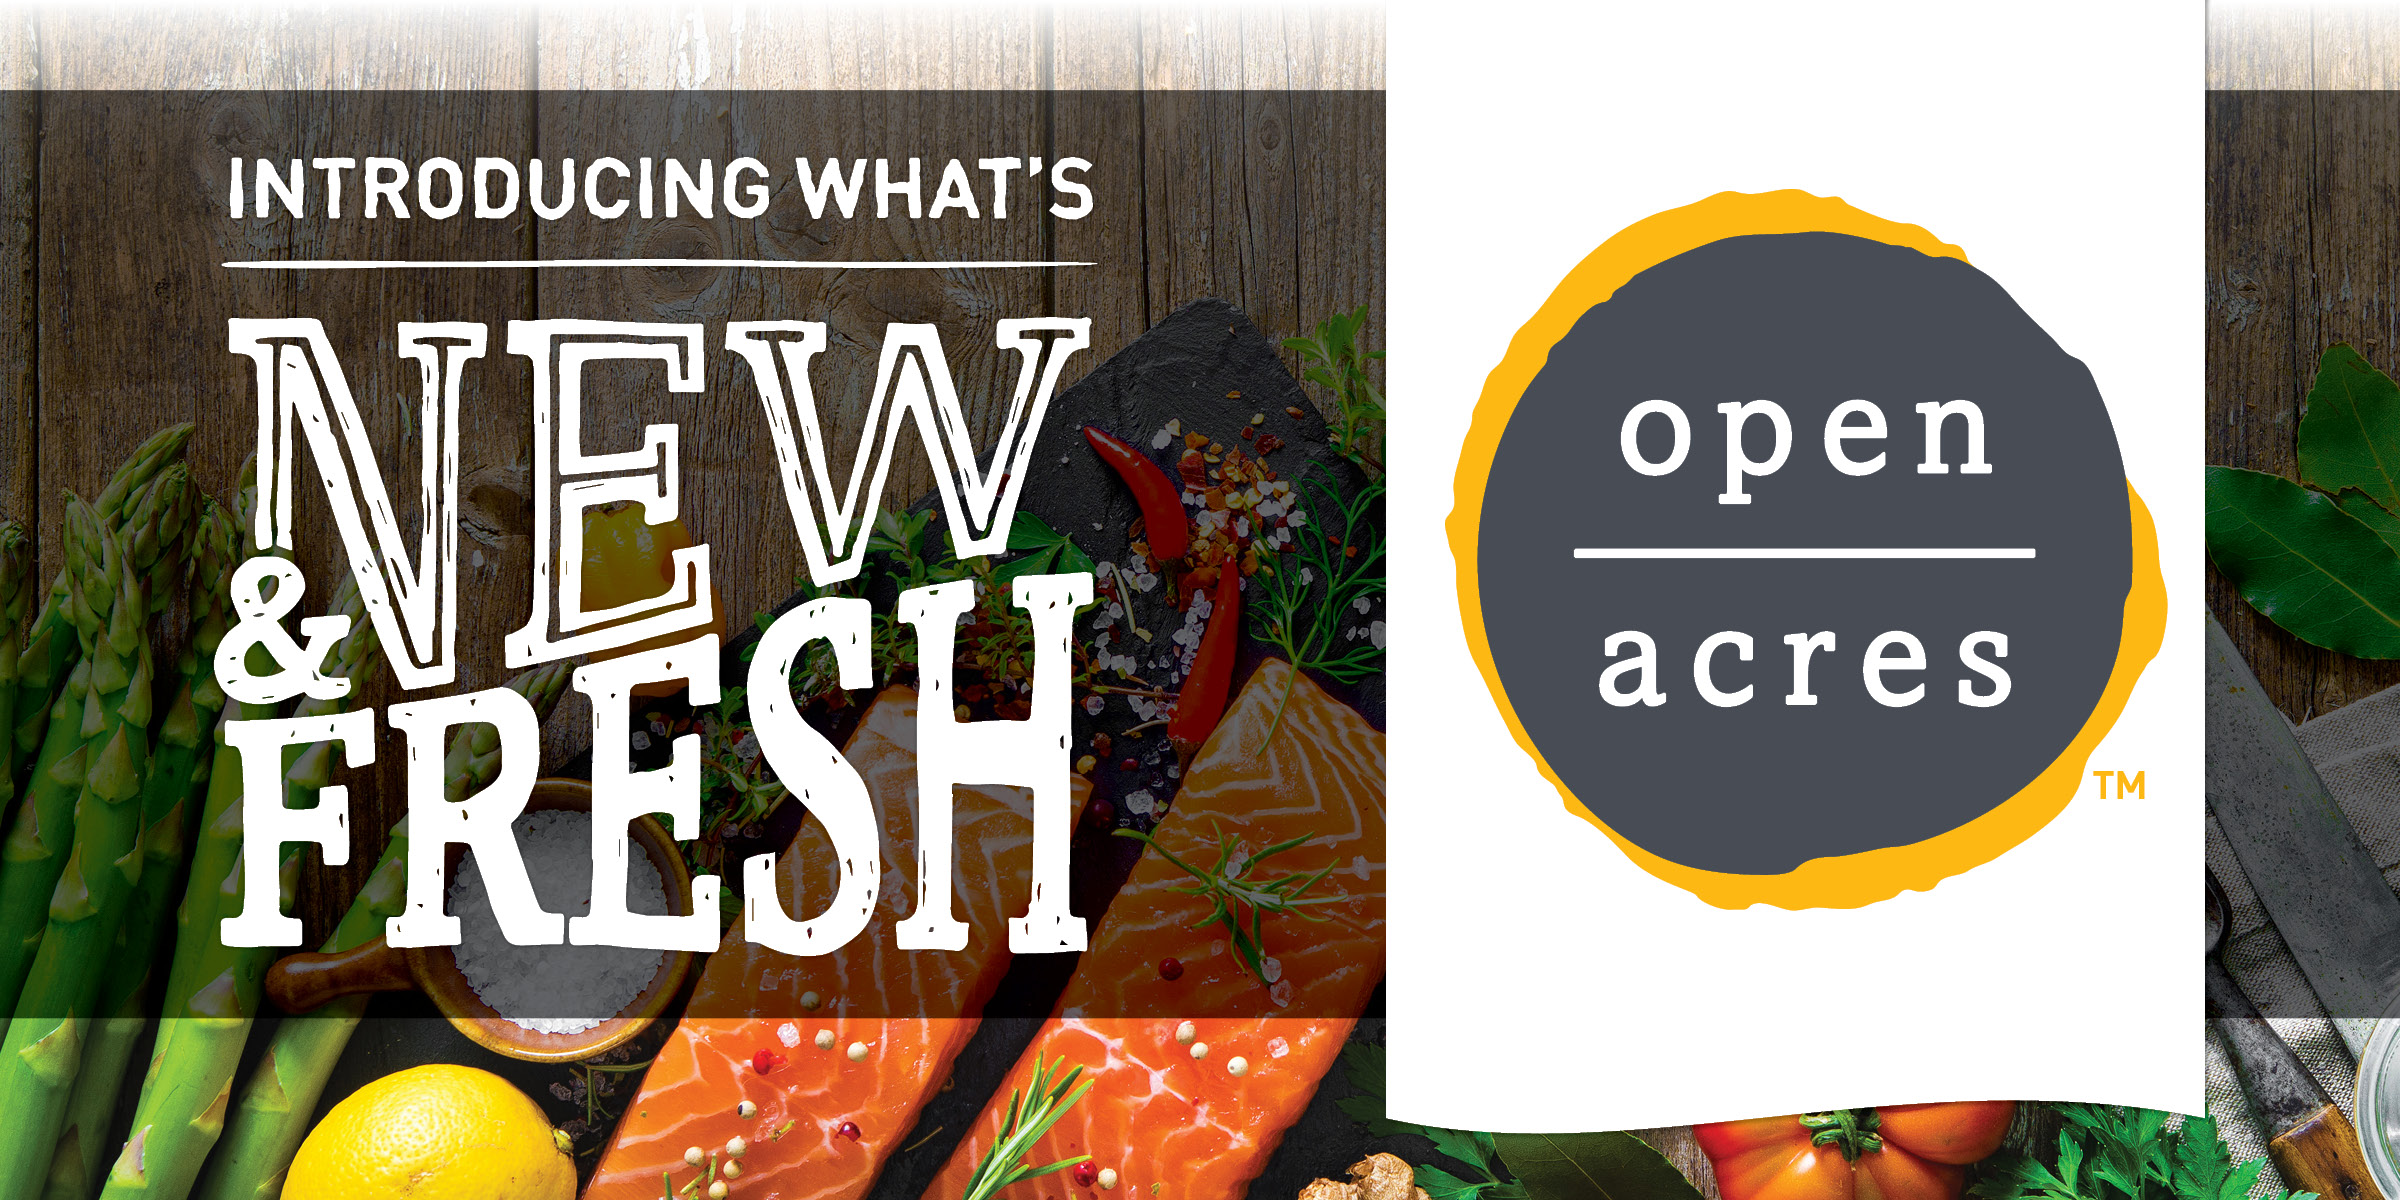 Open Acres brand private label grocery products